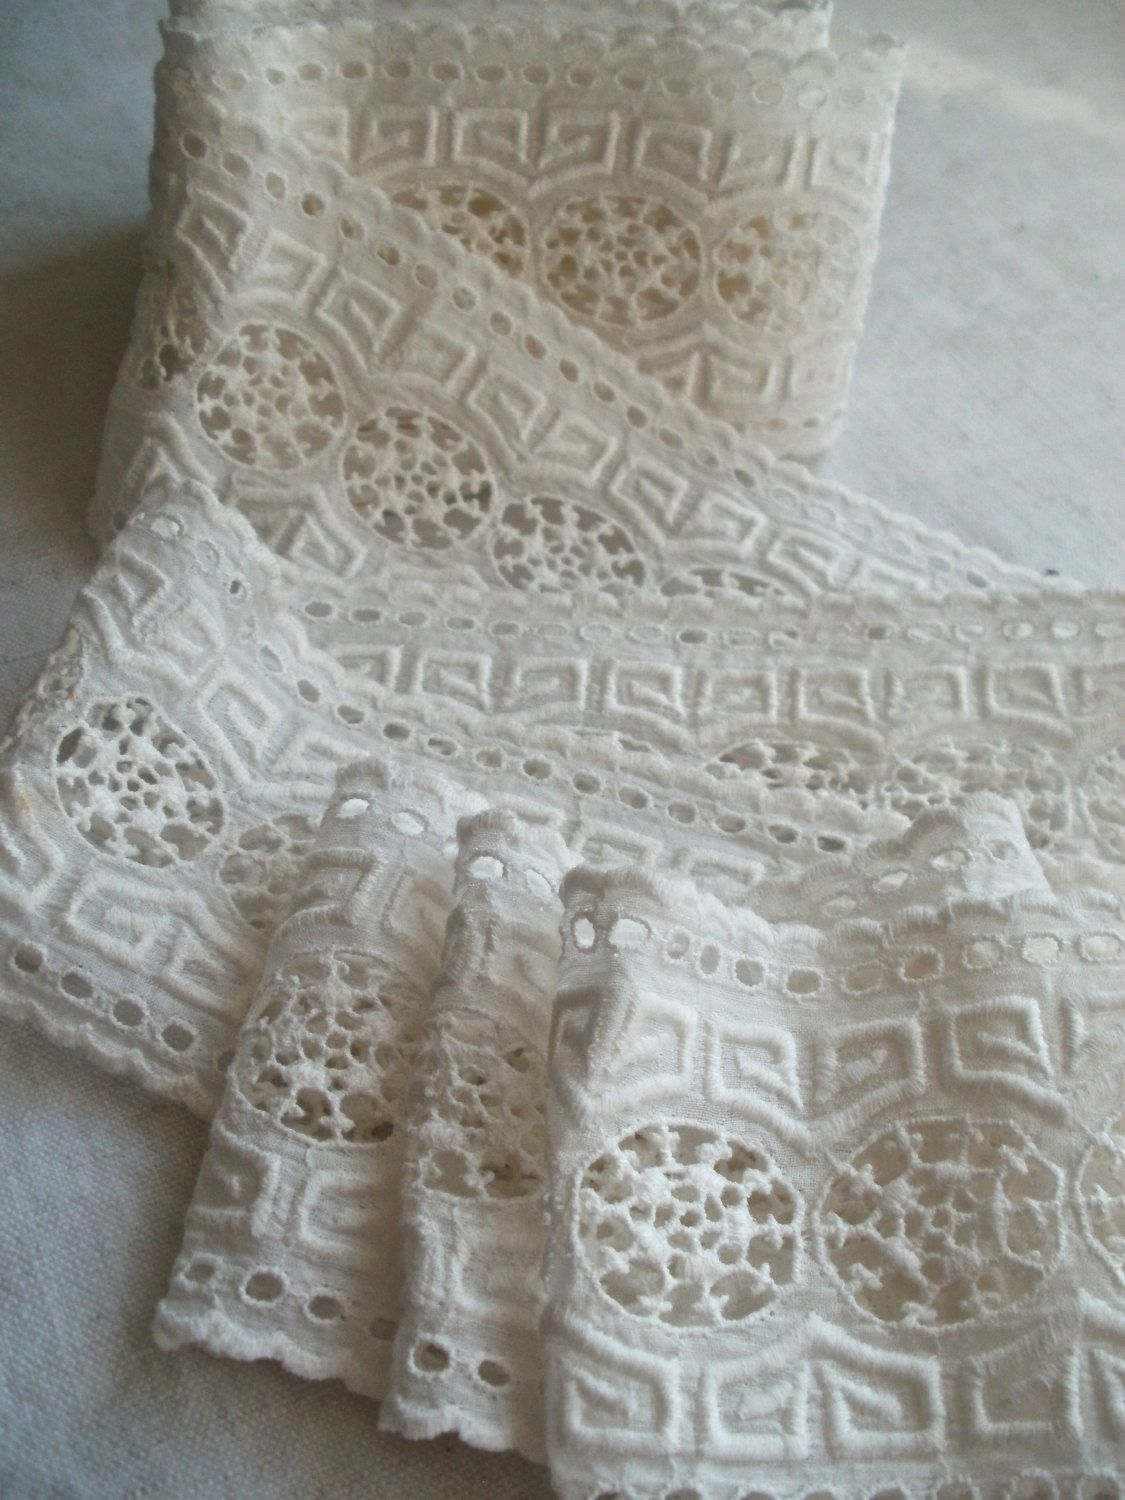 Antique Lace Trim Broderie Anglaise Lace 2 5 Yards Sewing Supplies Period Costume Vintage French Lace Trim Hab Antique Lace Linens And Lace Vintage Linens